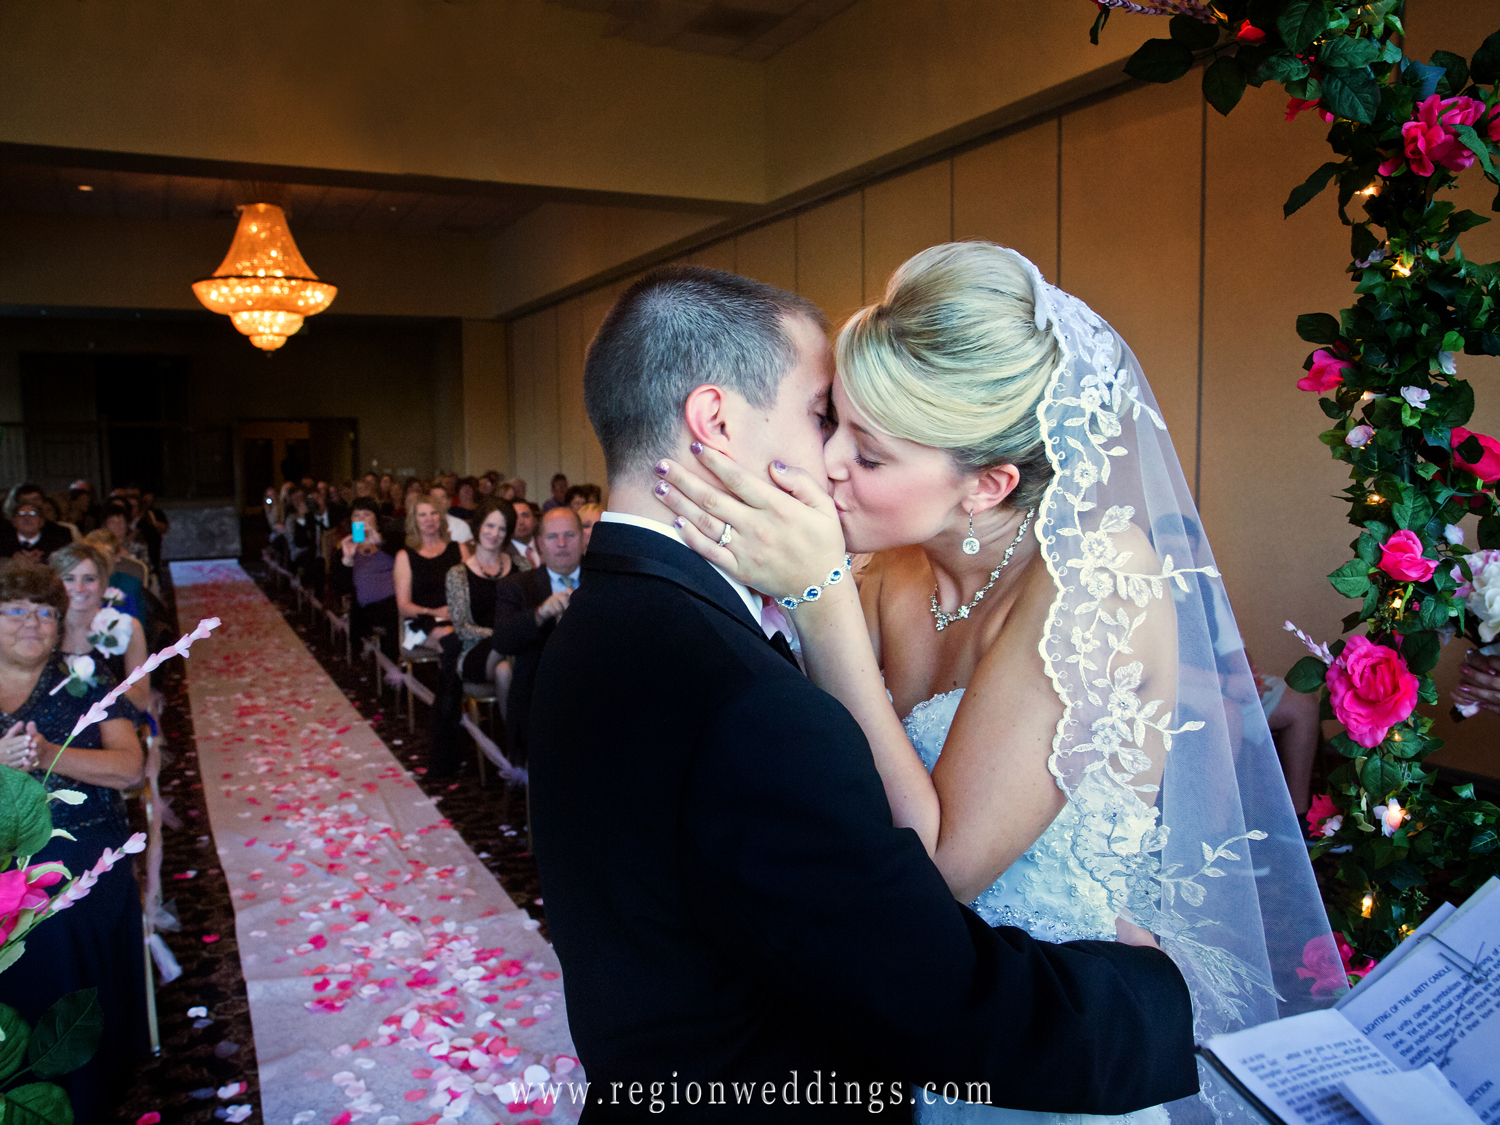 First kiss at an indoor wedding ceremony at Avalon Manor in Hobart, Indiana.